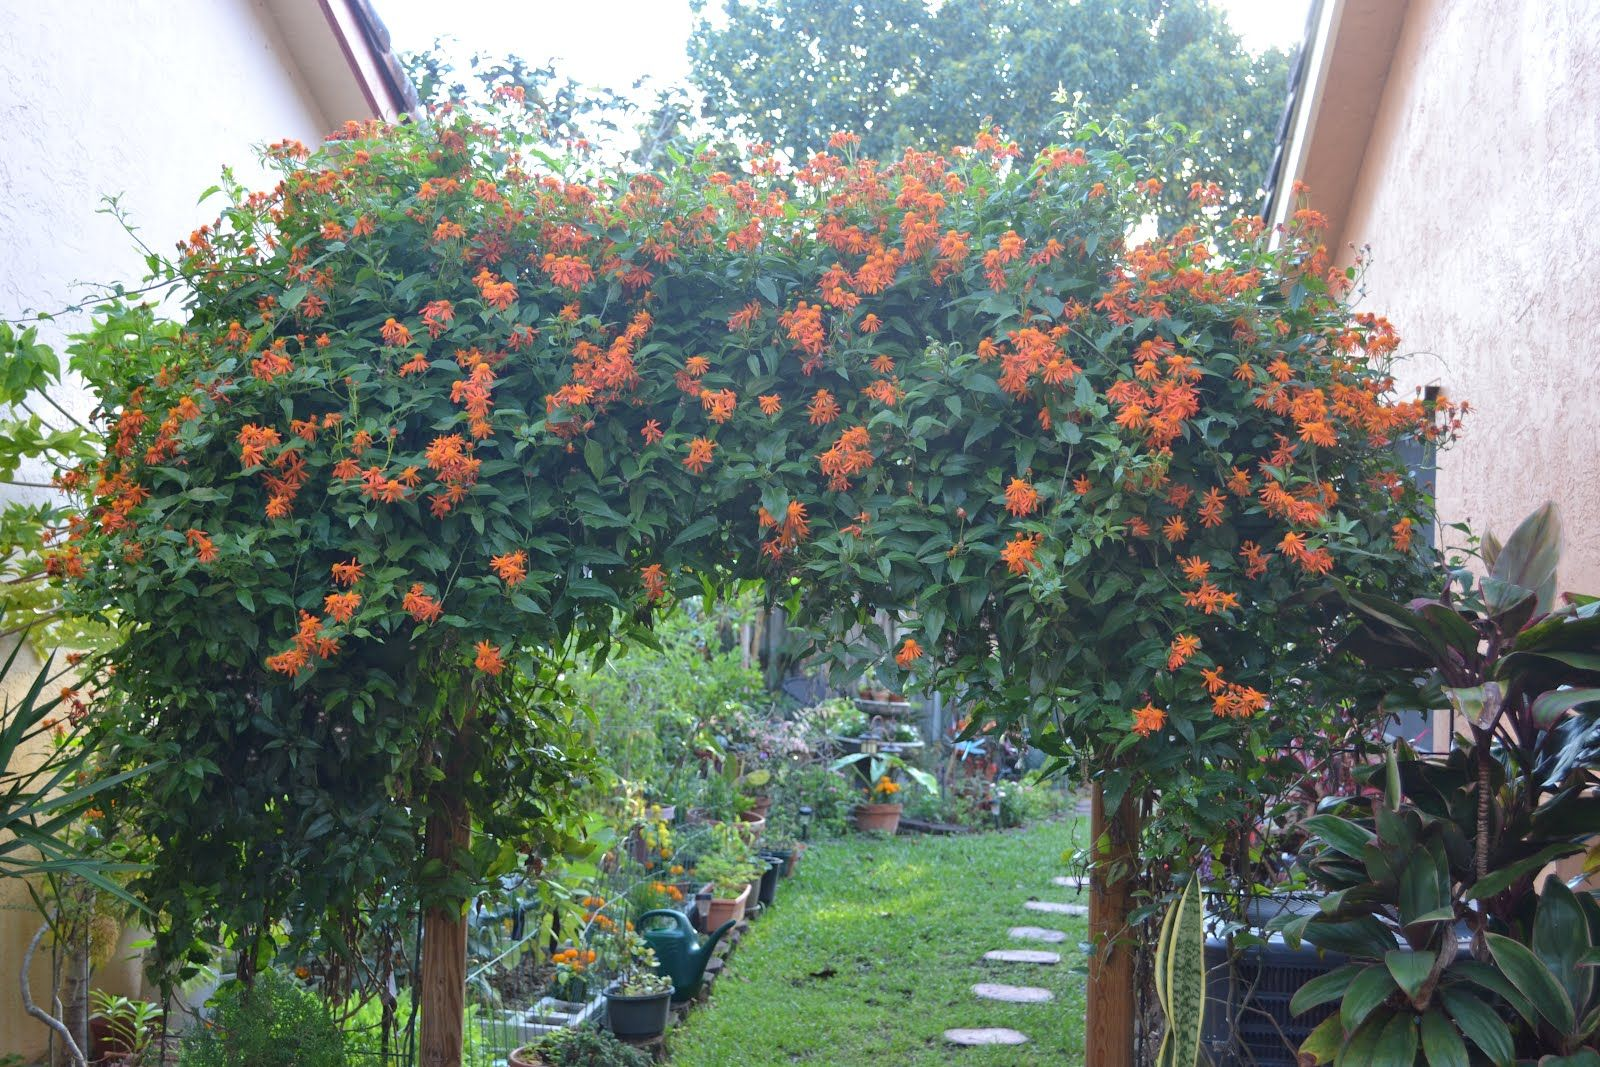 Mexican Flame Vine Google Search Concrete leaves